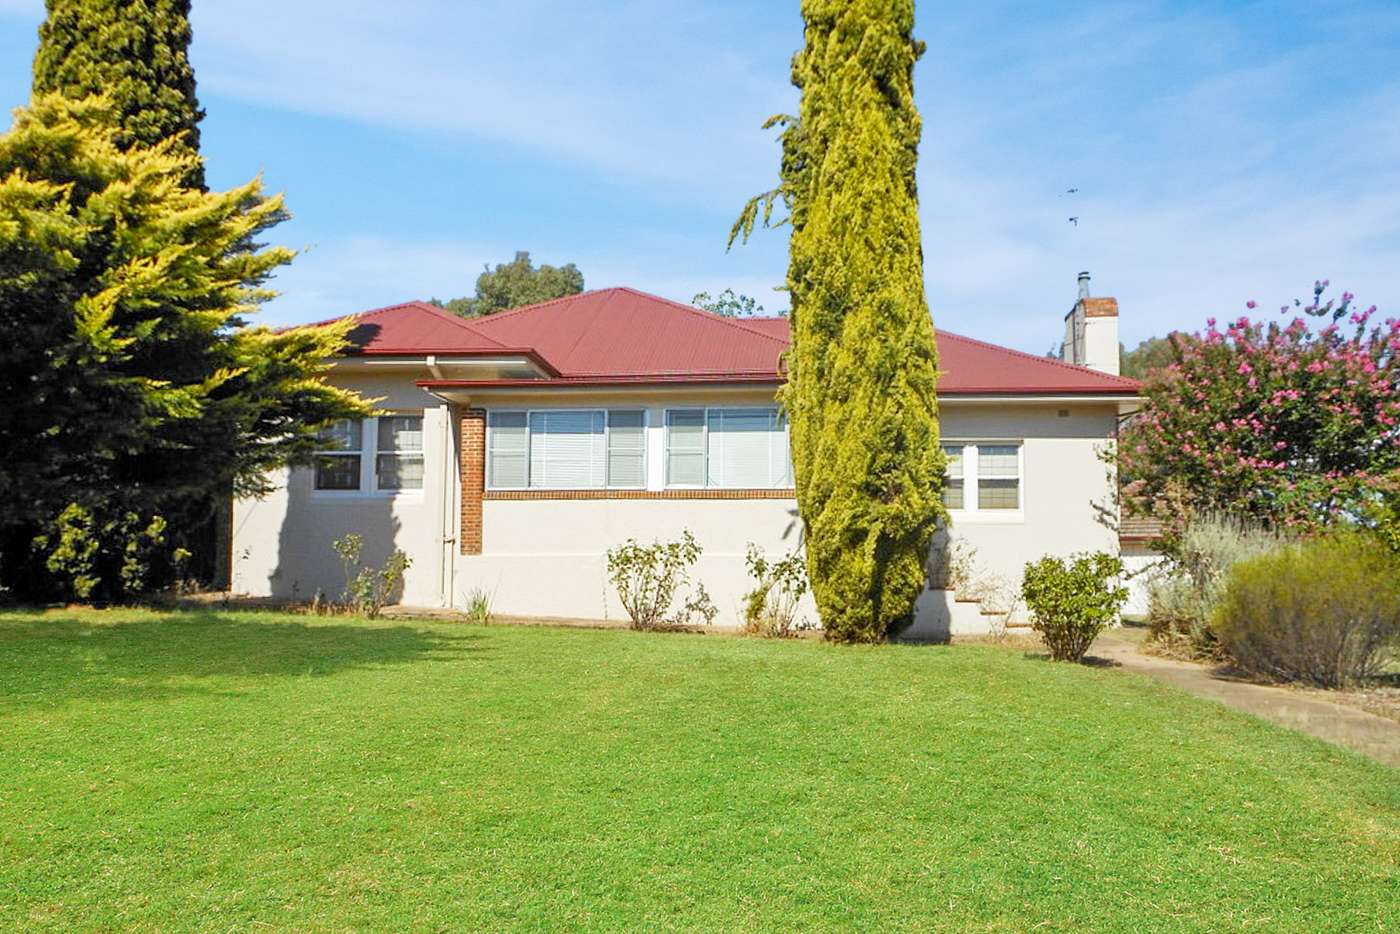 Main view of Homely house listing, 33 Blackett Avenue, Young NSW 2594